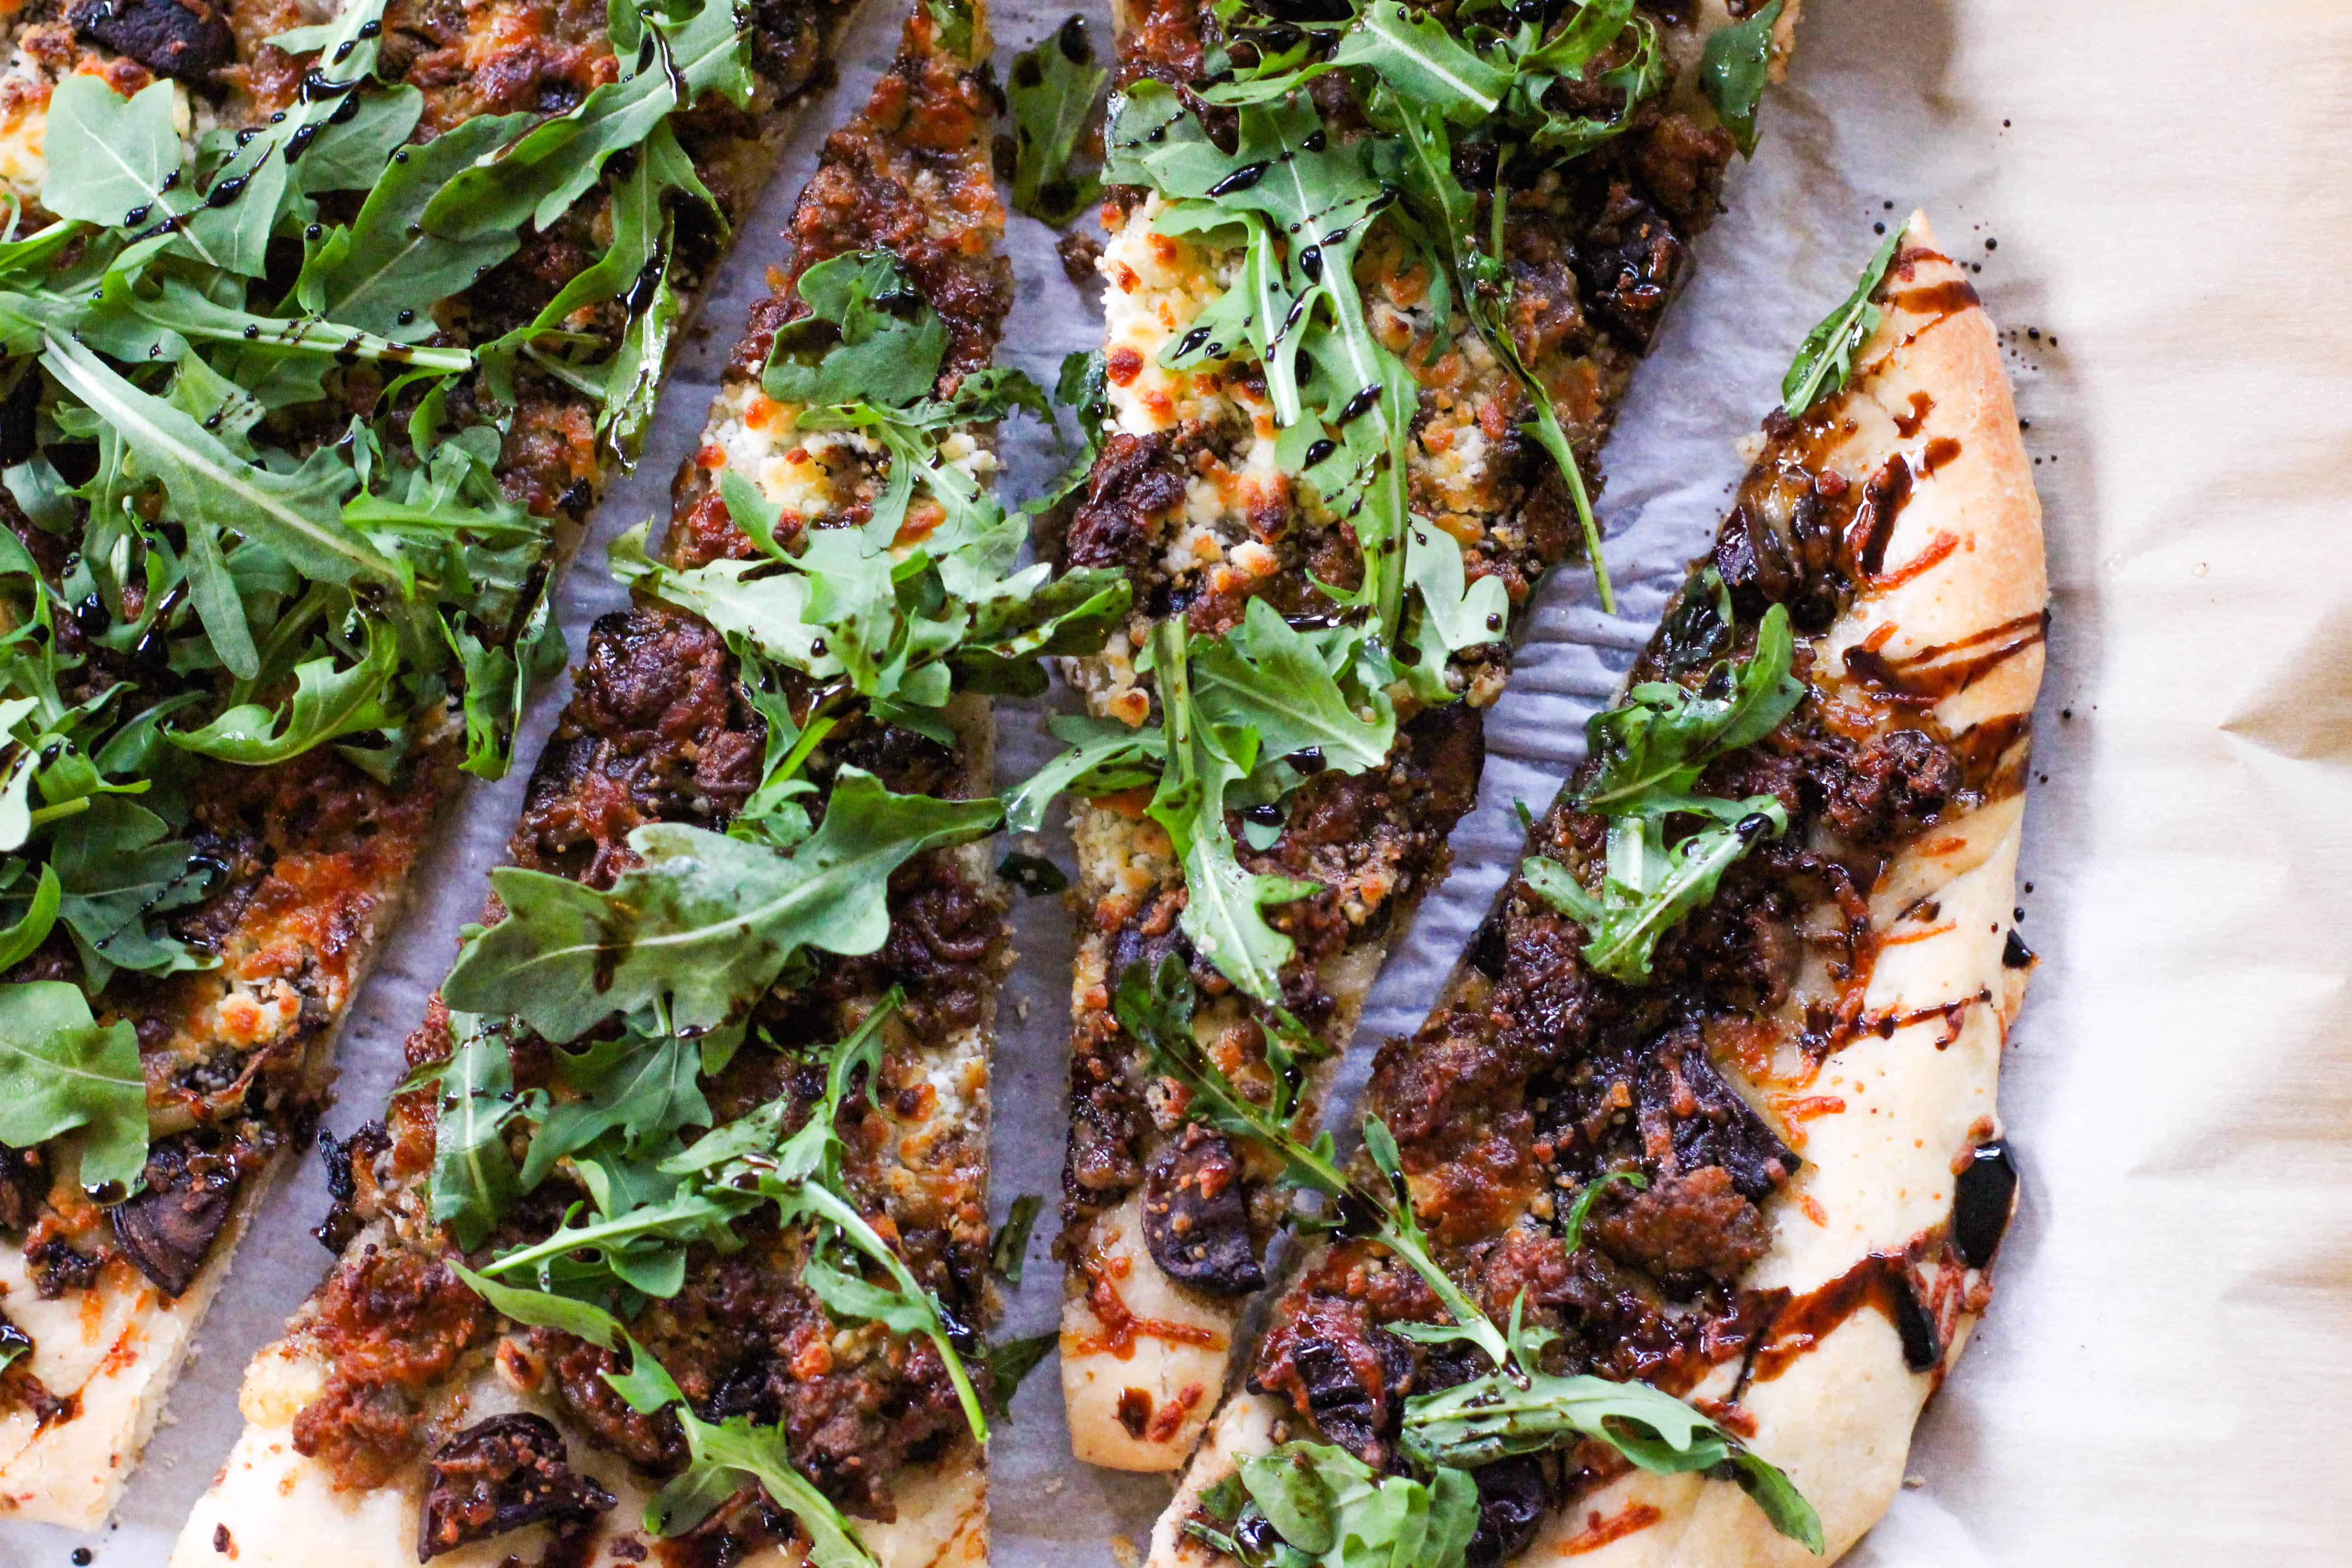 Rustic Pizza with Goat Cheese and Balsamic Reduction